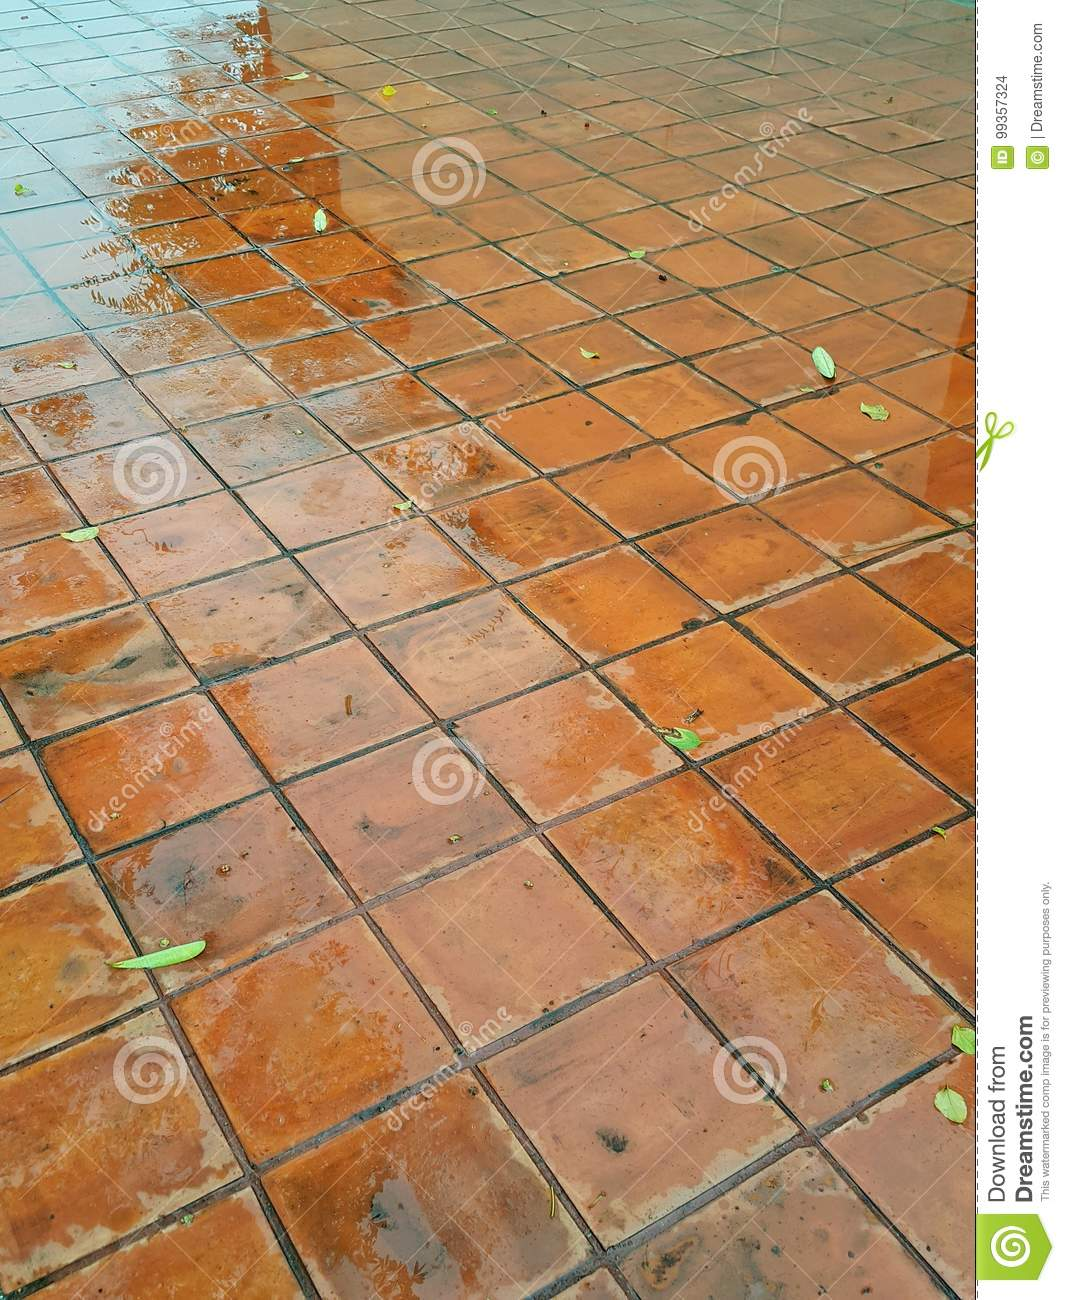 Clay Tile Flooring Stock Photo Image Of Expensive Hotel 99357324